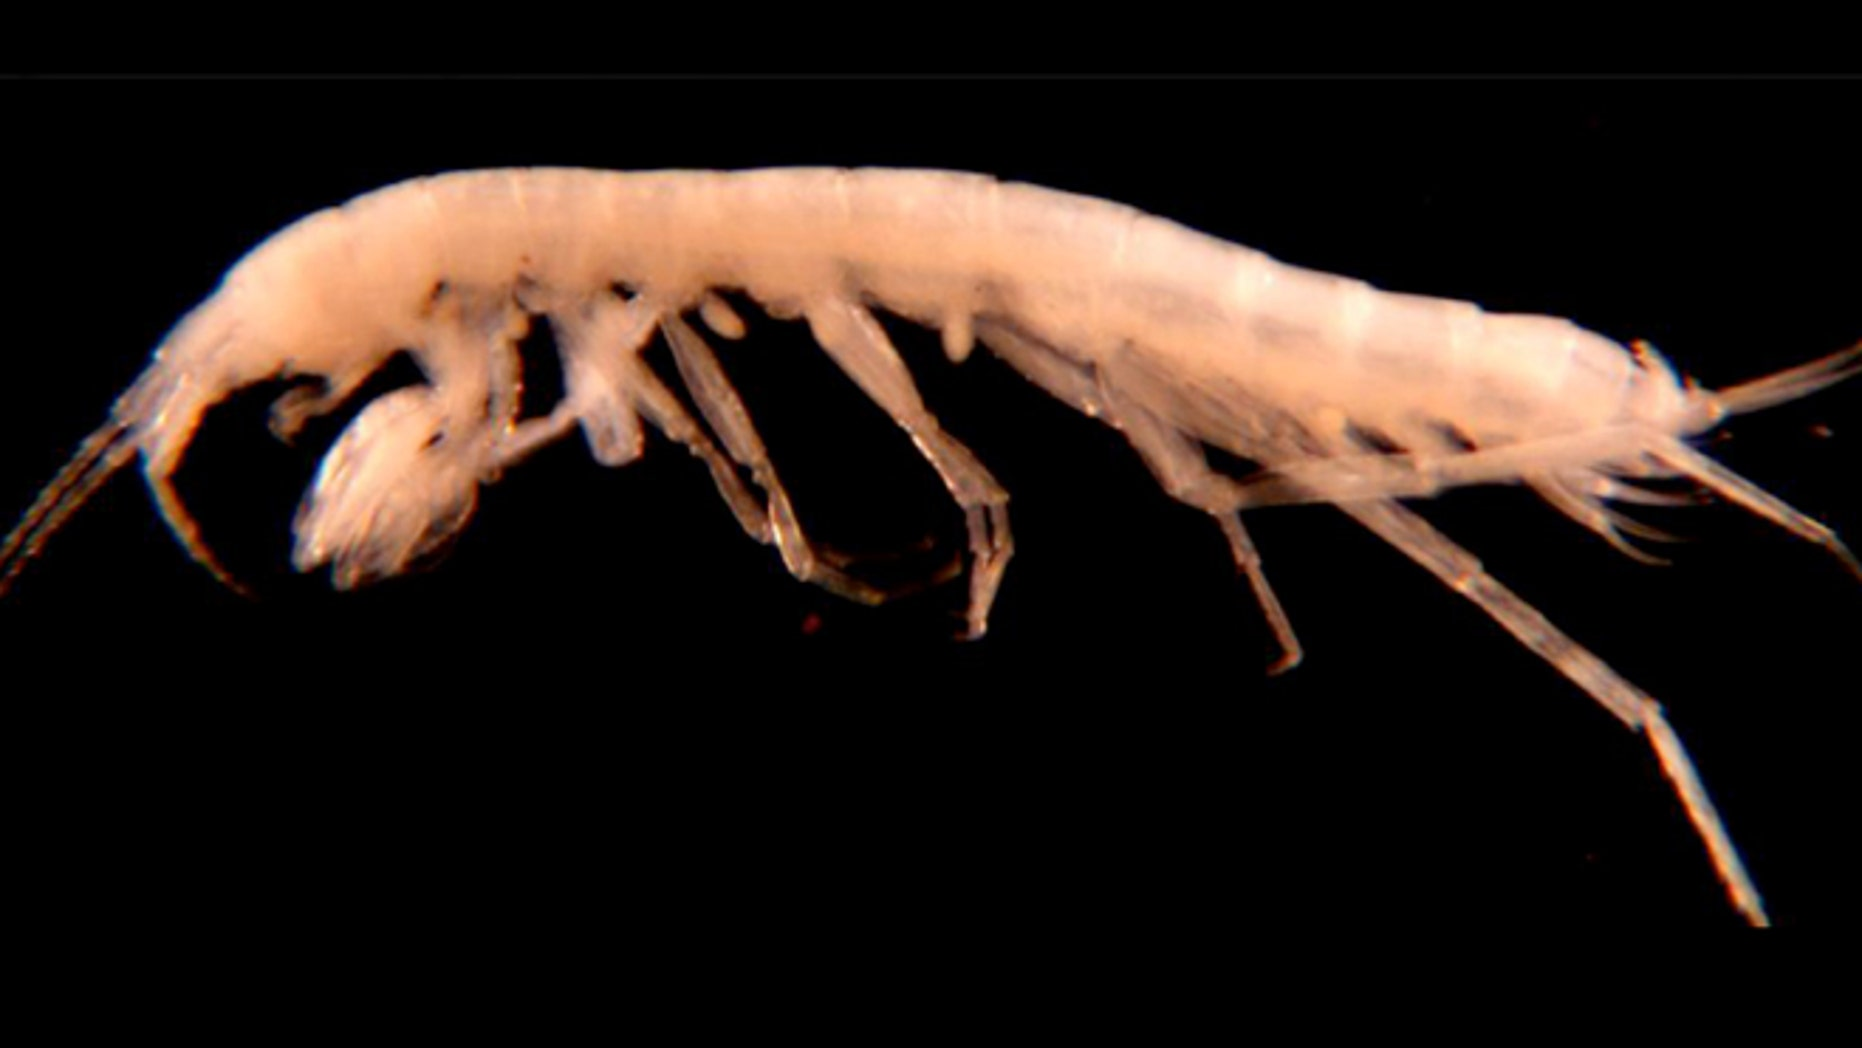 Apr. 17, 2012: A newly discovered species of freshwater amphipod was recently found in a subterranean pool inside a gypsum cave near Carlsbad, N.M.